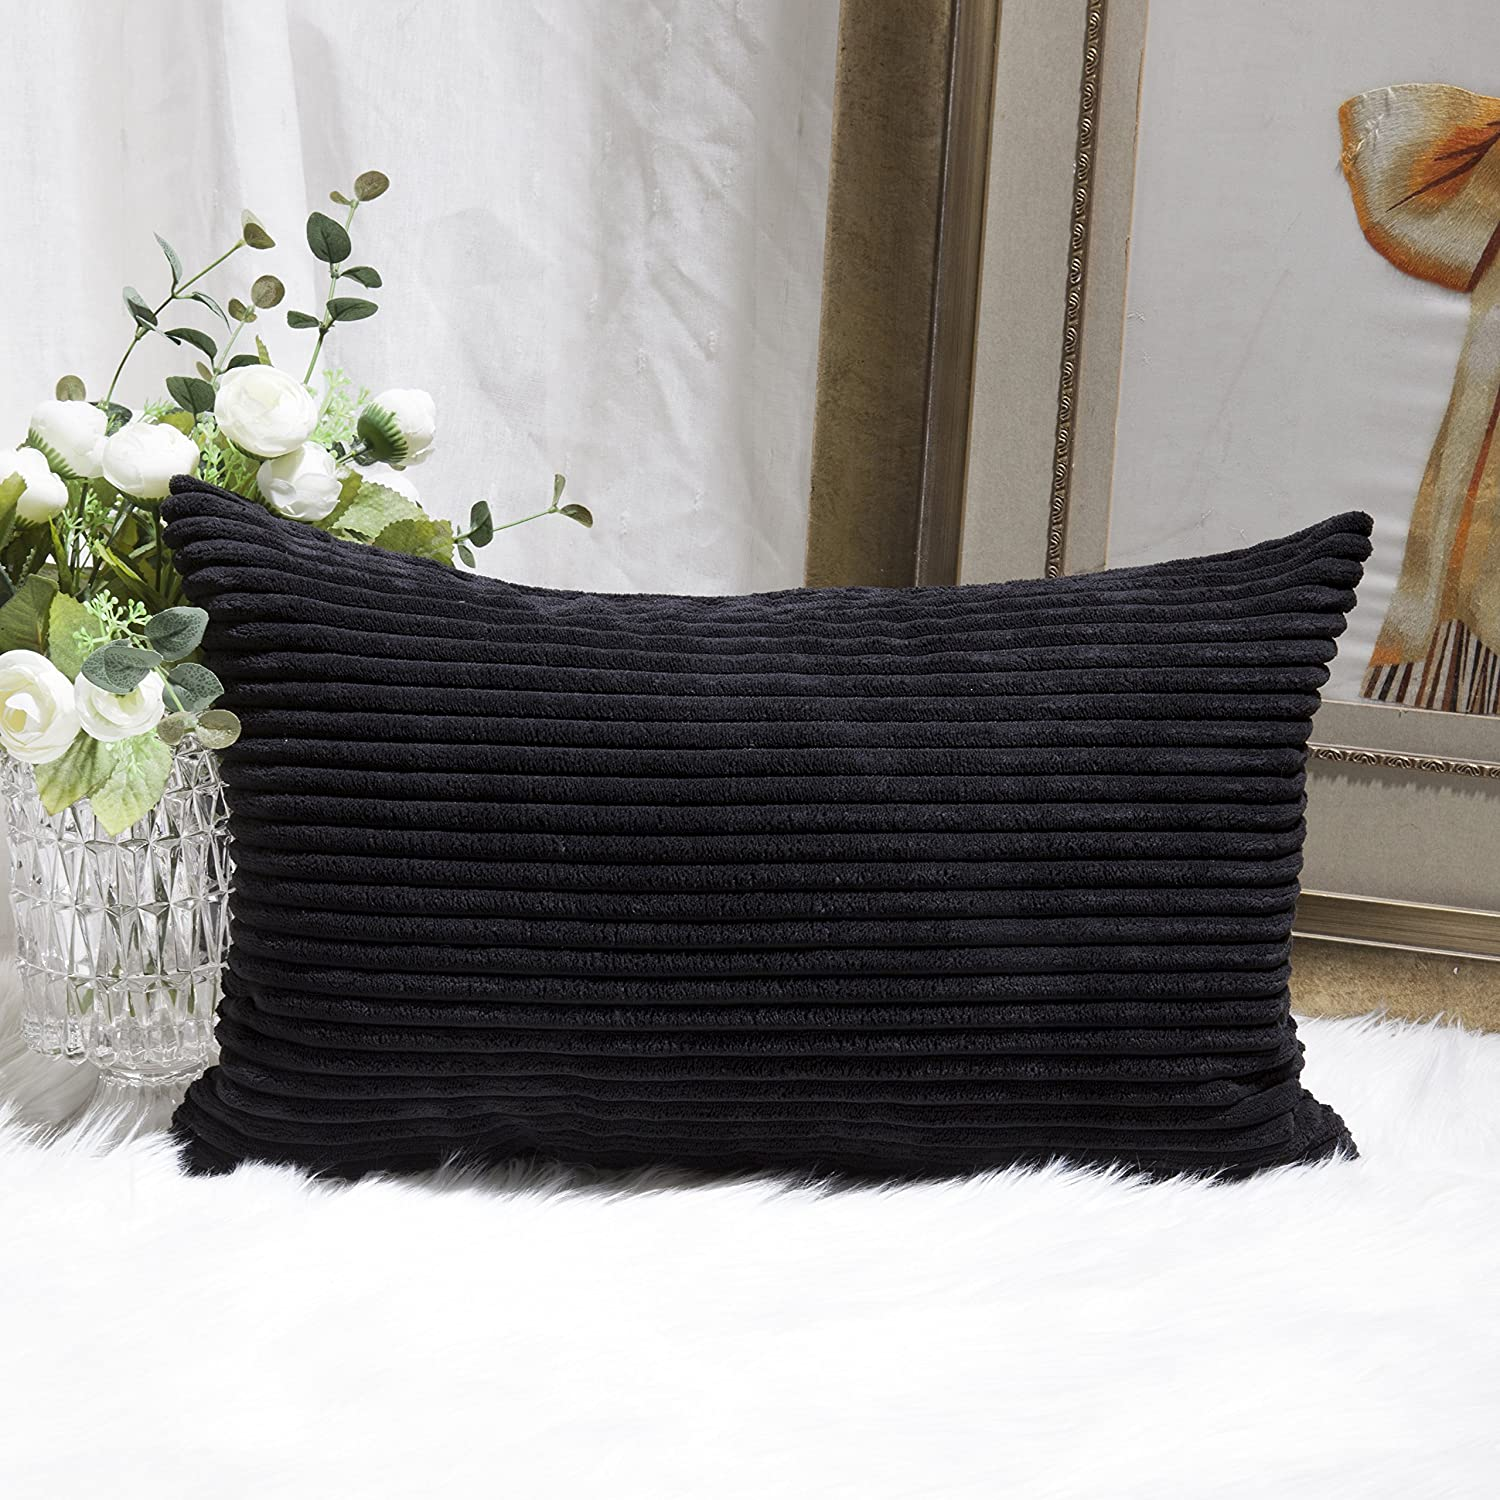 Home Brilliant Decor Holiday Decoration Striped Corduroy Solid Cushion Cover Throw Oblong Pillowcase for Lumbar, 12 x 20, Jet Black